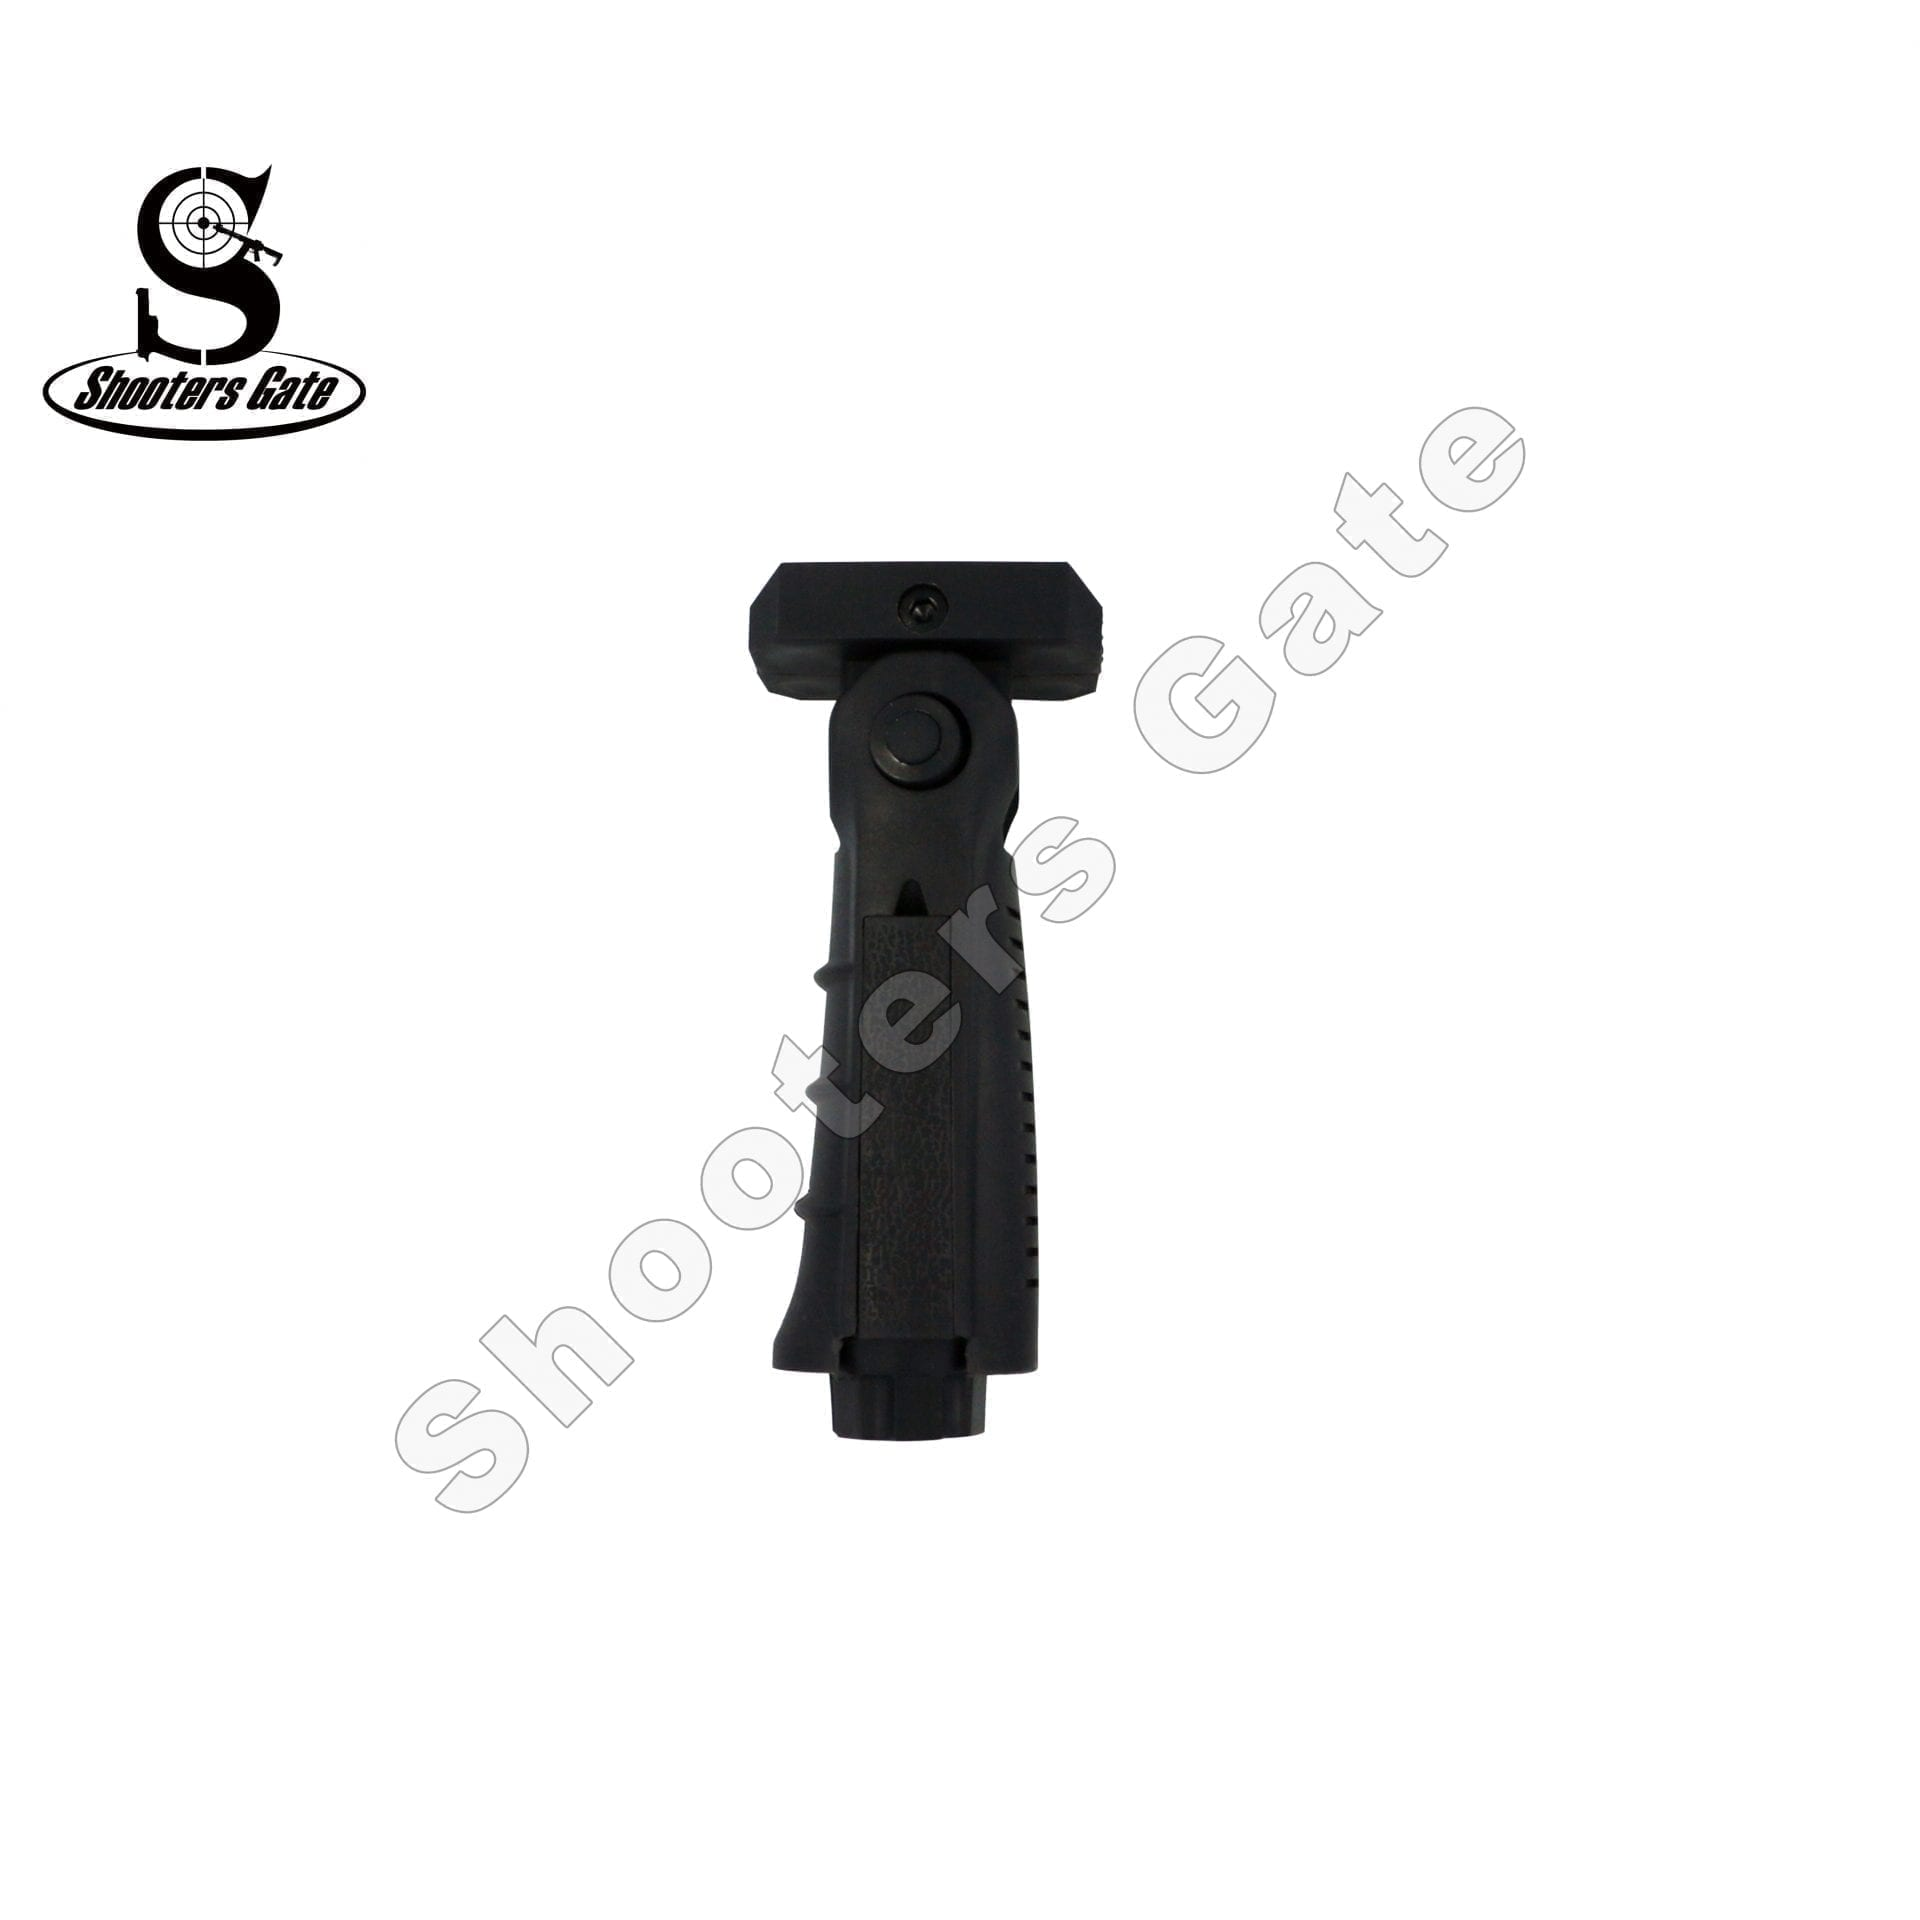 5 Position Folding Foregrip BLK